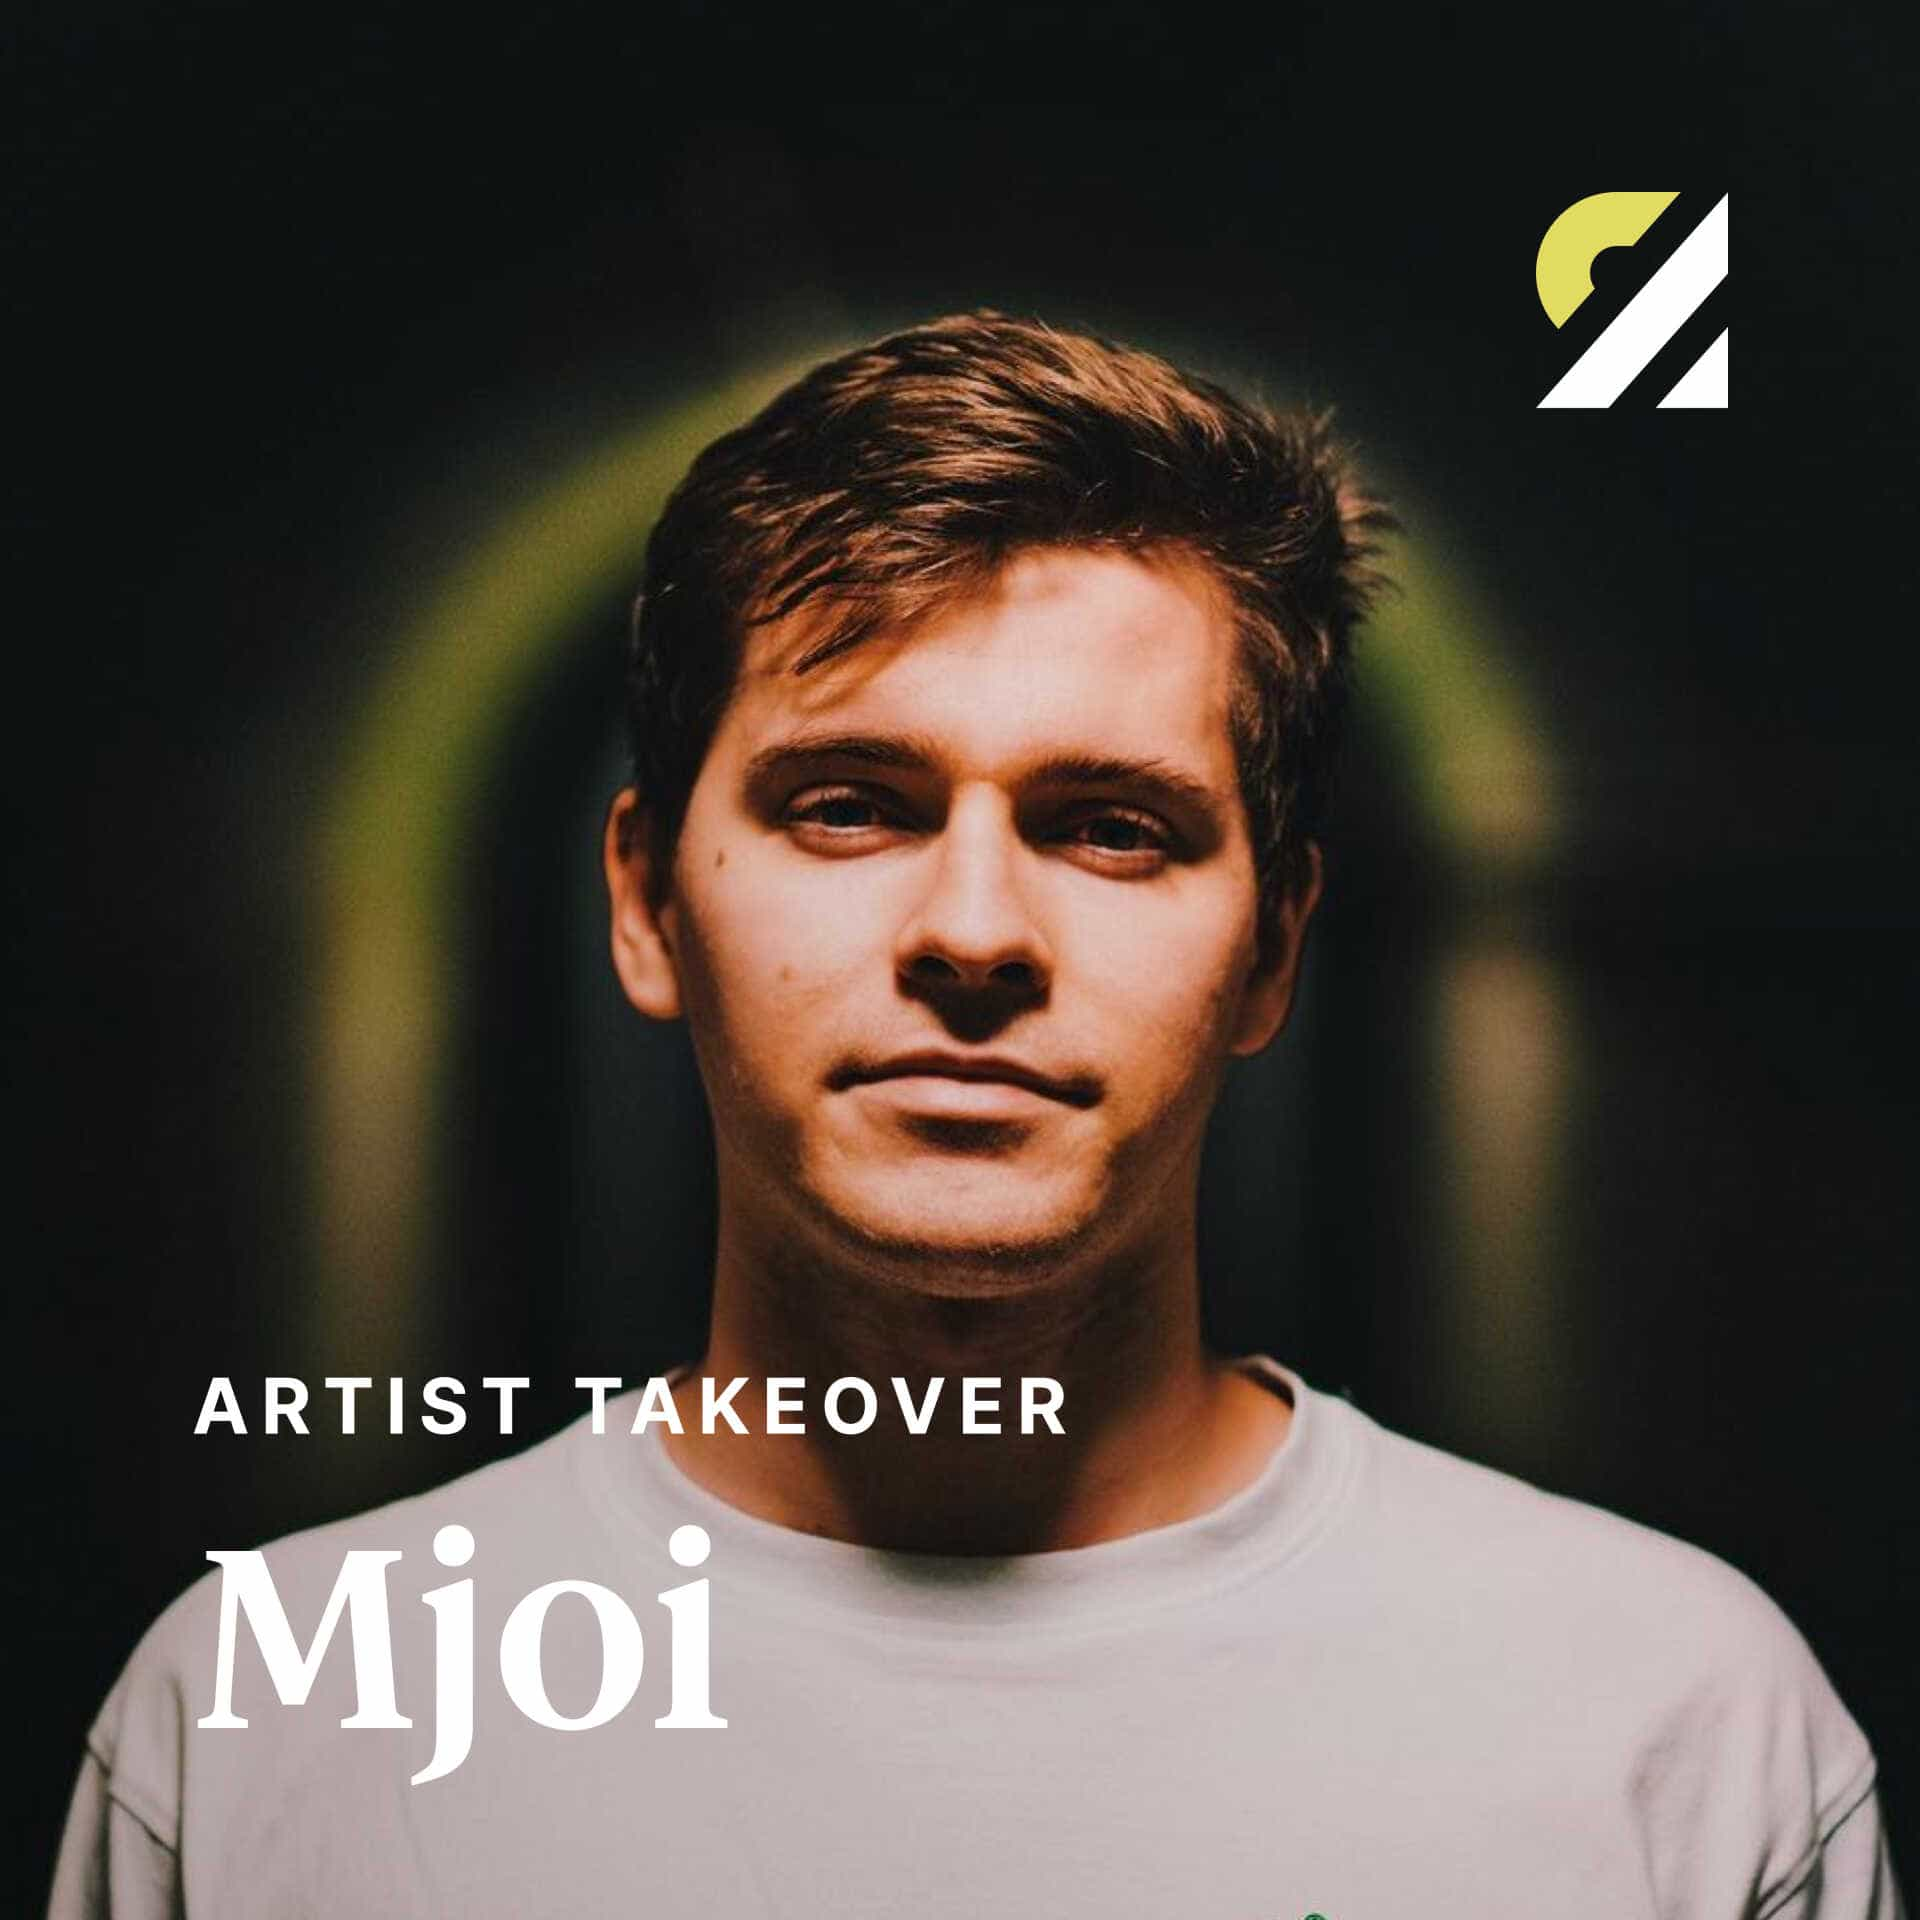 Cover image for the playlist Artist Takeover Mjoi